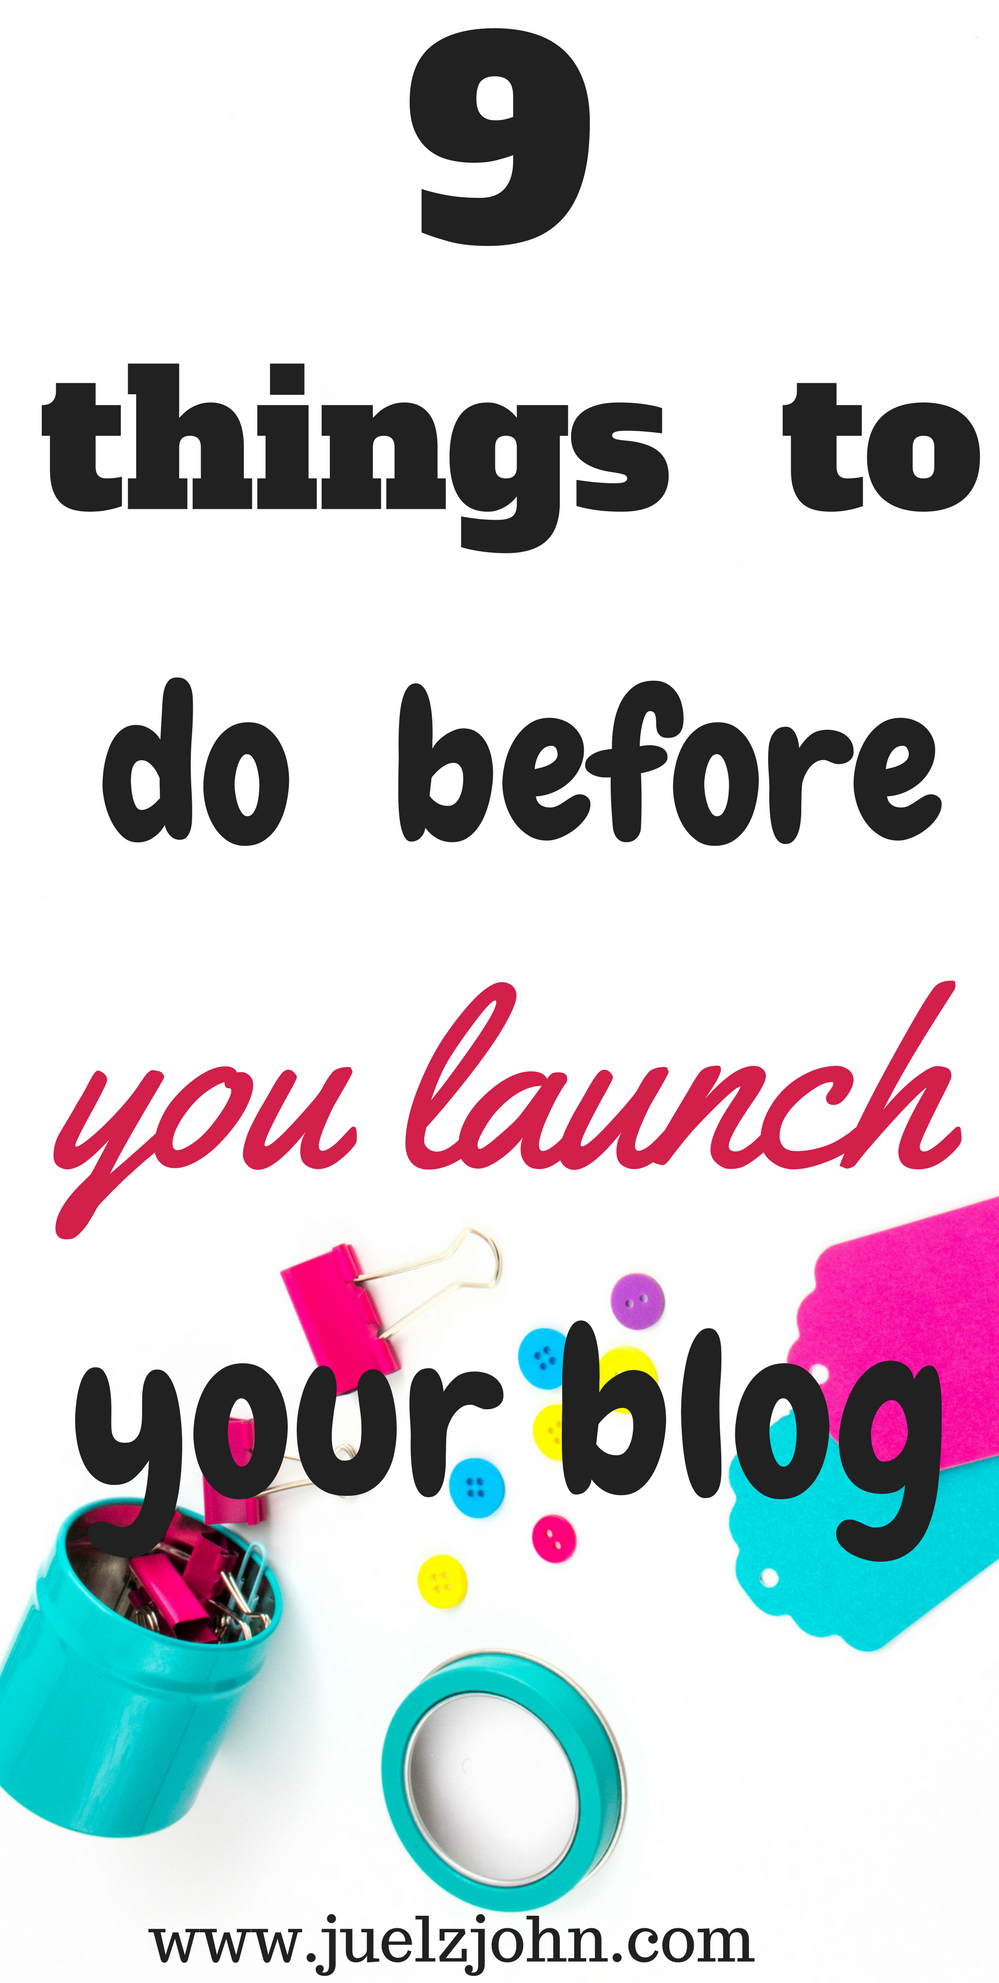 https://juelzjohn.com/9-things-to-do-before-you-launch-your-blog/